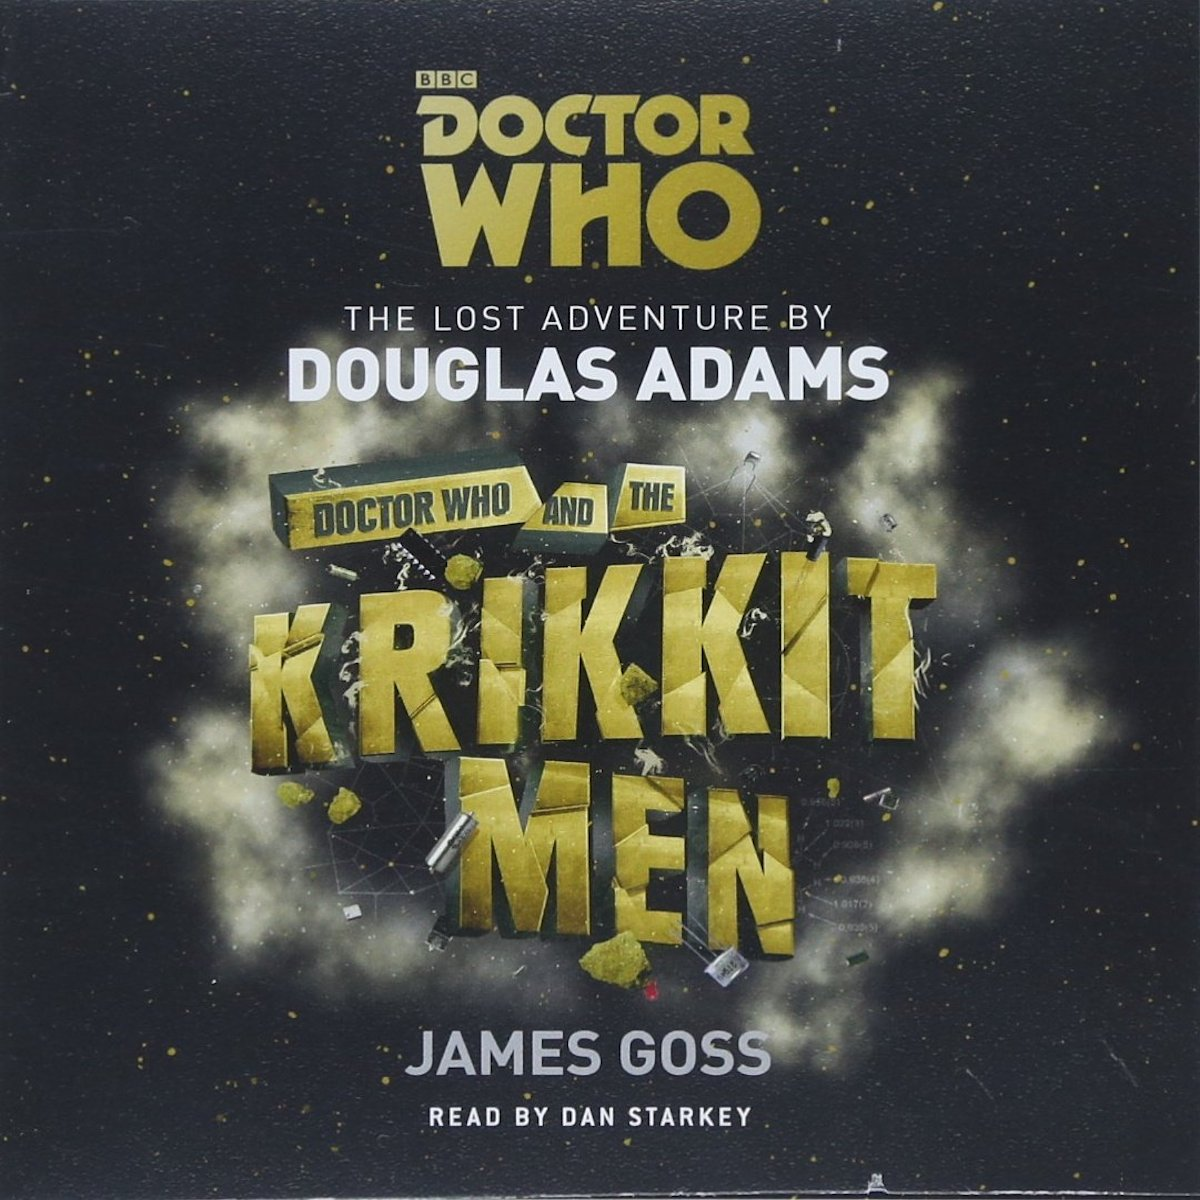 Doctor Who and the Krikkitmen: